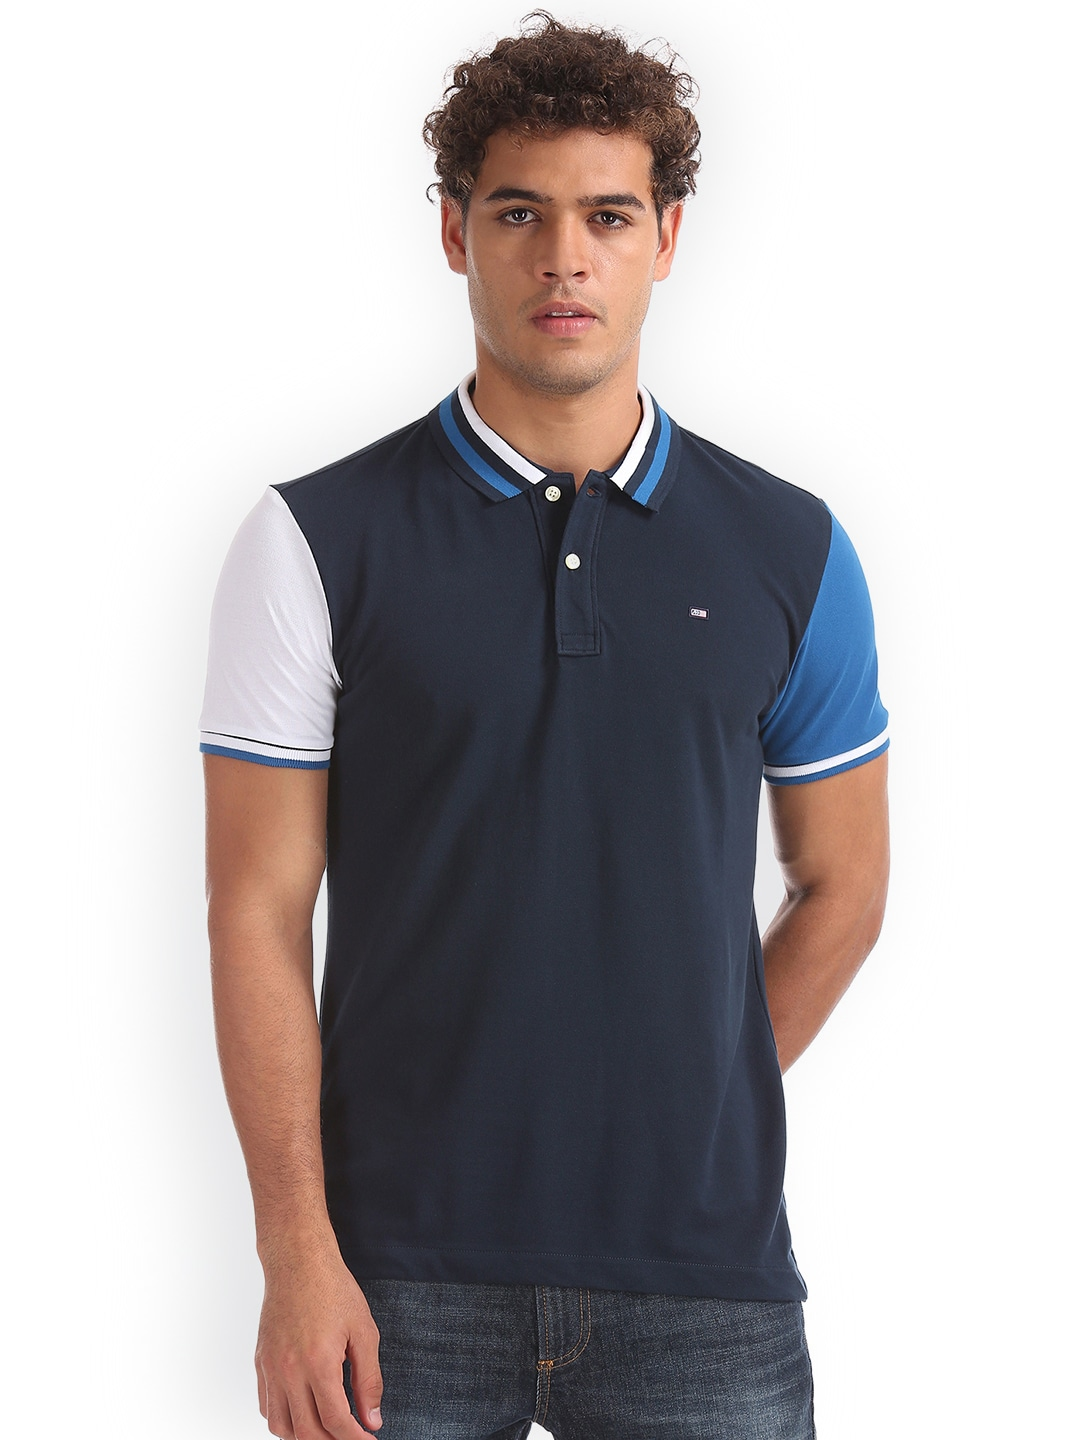 7f96454c97b Sports Polo T Shirts Online India